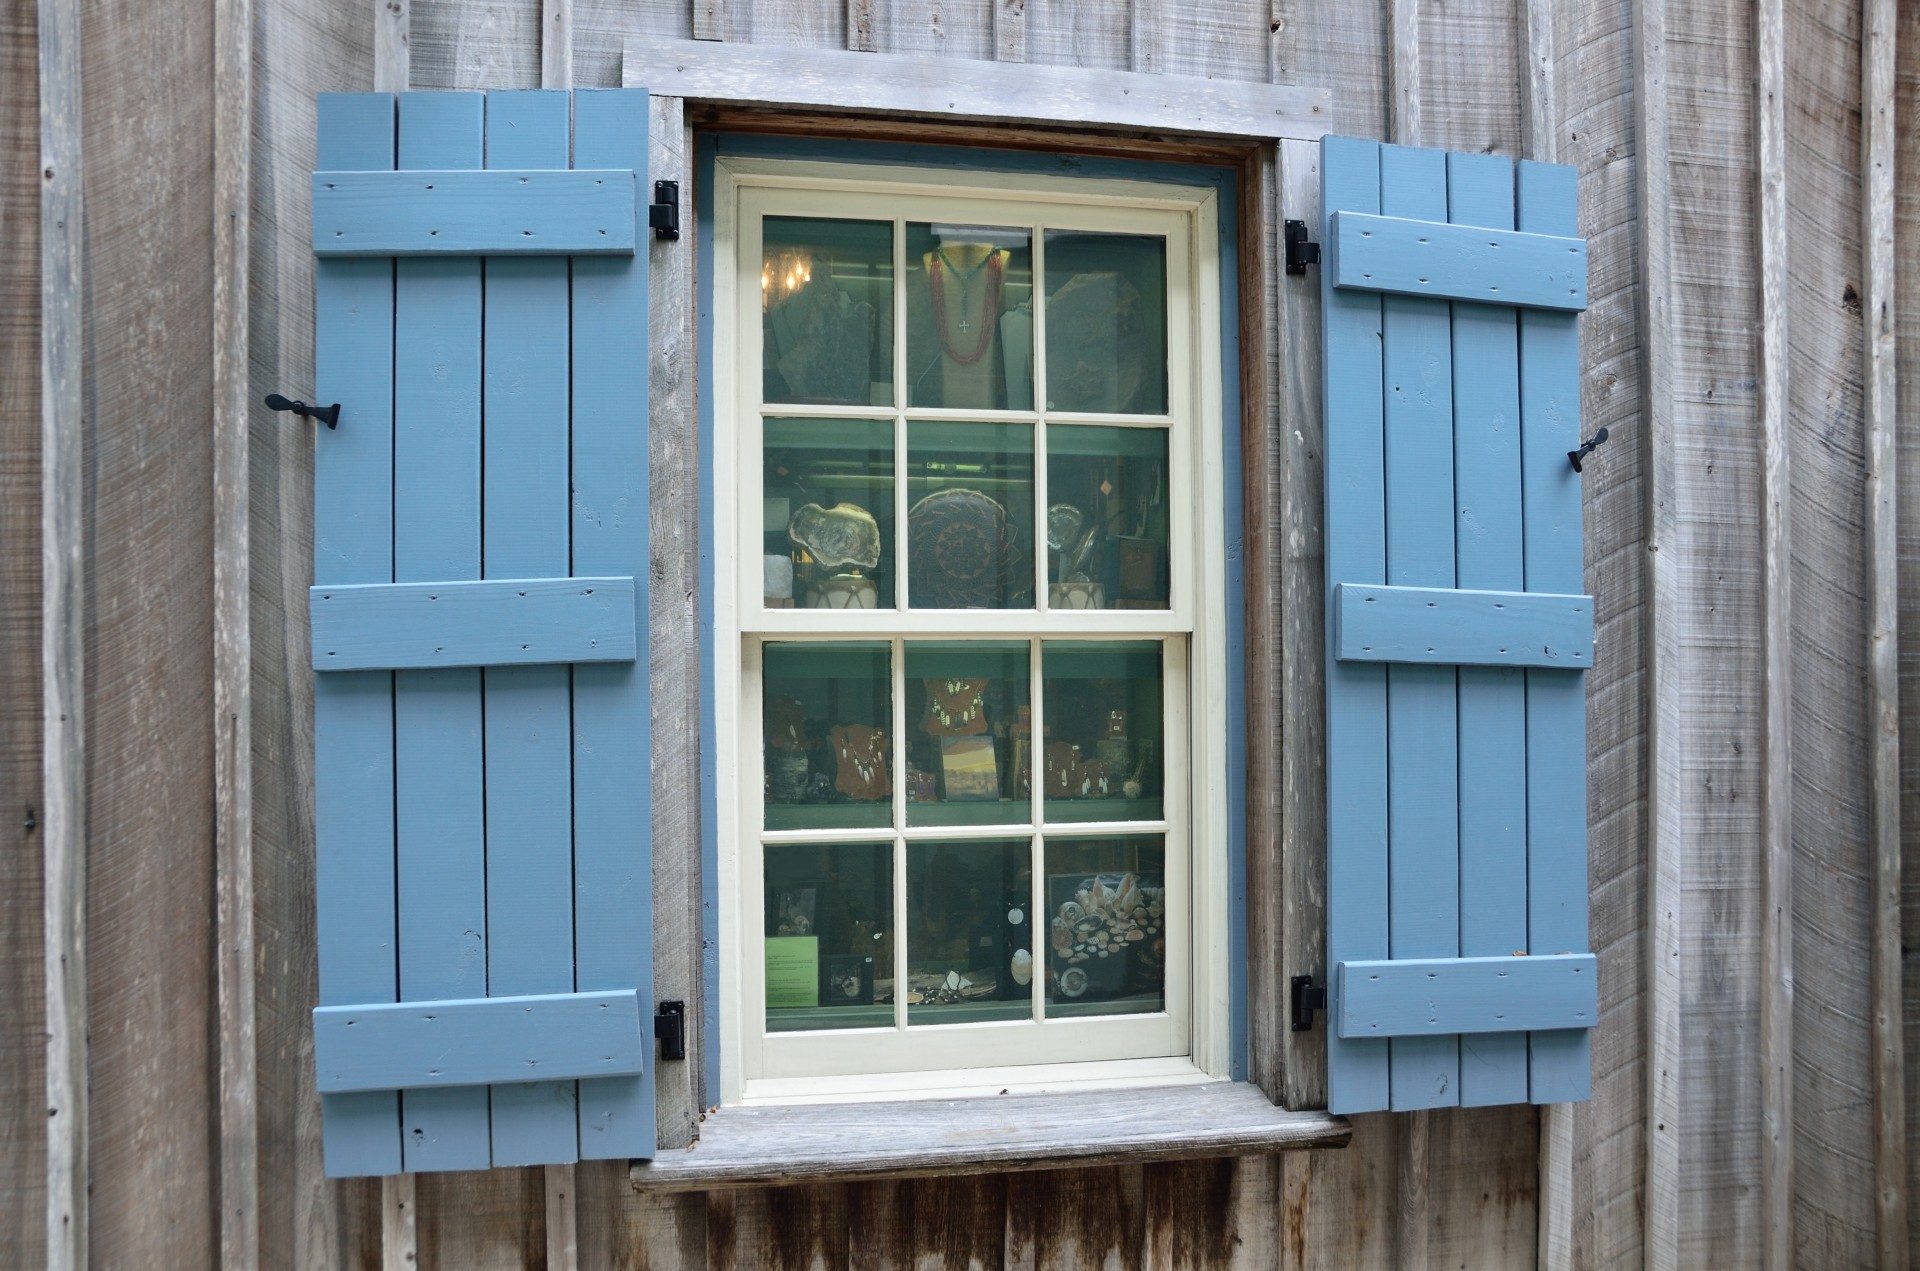 Download Free Photo Of Vintage Window Window Old Antique Shutters From Needpix Com